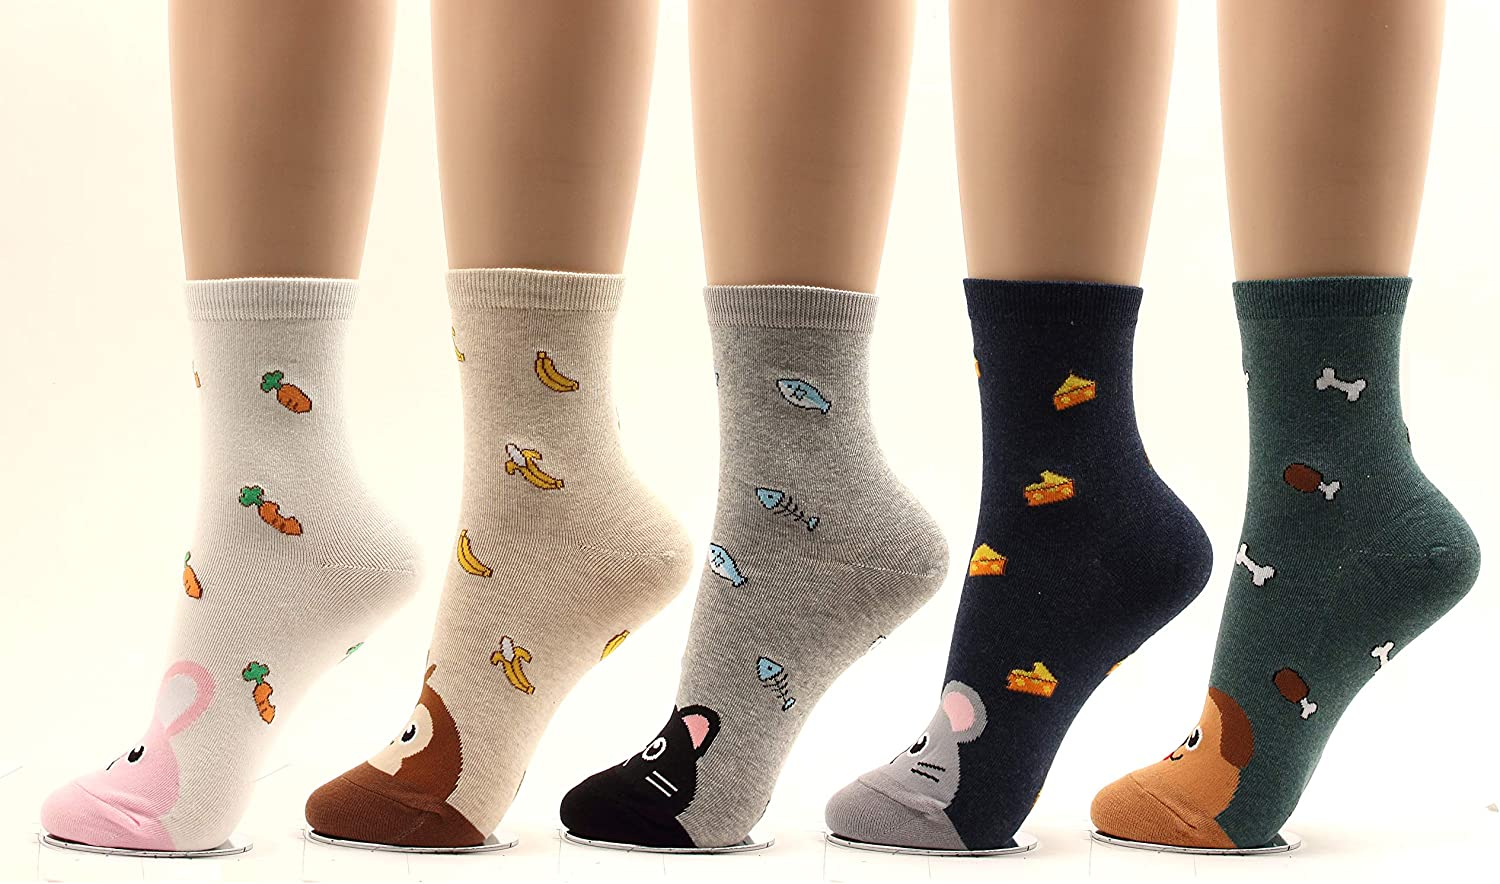 Whale Unisex Funny Casual Crew Socks Athletic Socks For Boys Girls Kids Teenagers